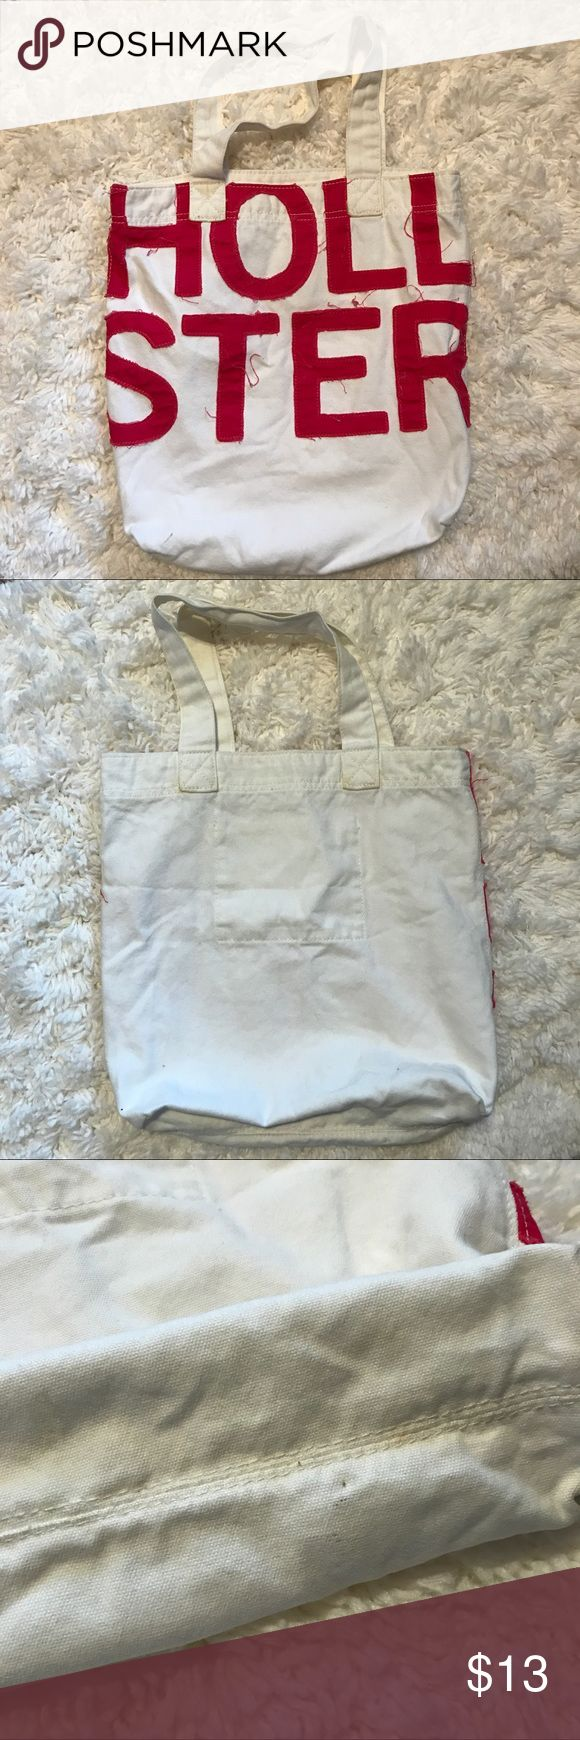 """Hollister Tote Bag Very gently used cream colored Hollister Tote Bag (with pink lettering). There are a few small stains. Perfect for carrying books, school supplies, everyday items or even travel! In great condition! Make an offer!!   Dimensions: 14""""X11""""x4"""" Hollister Bags Totes"""